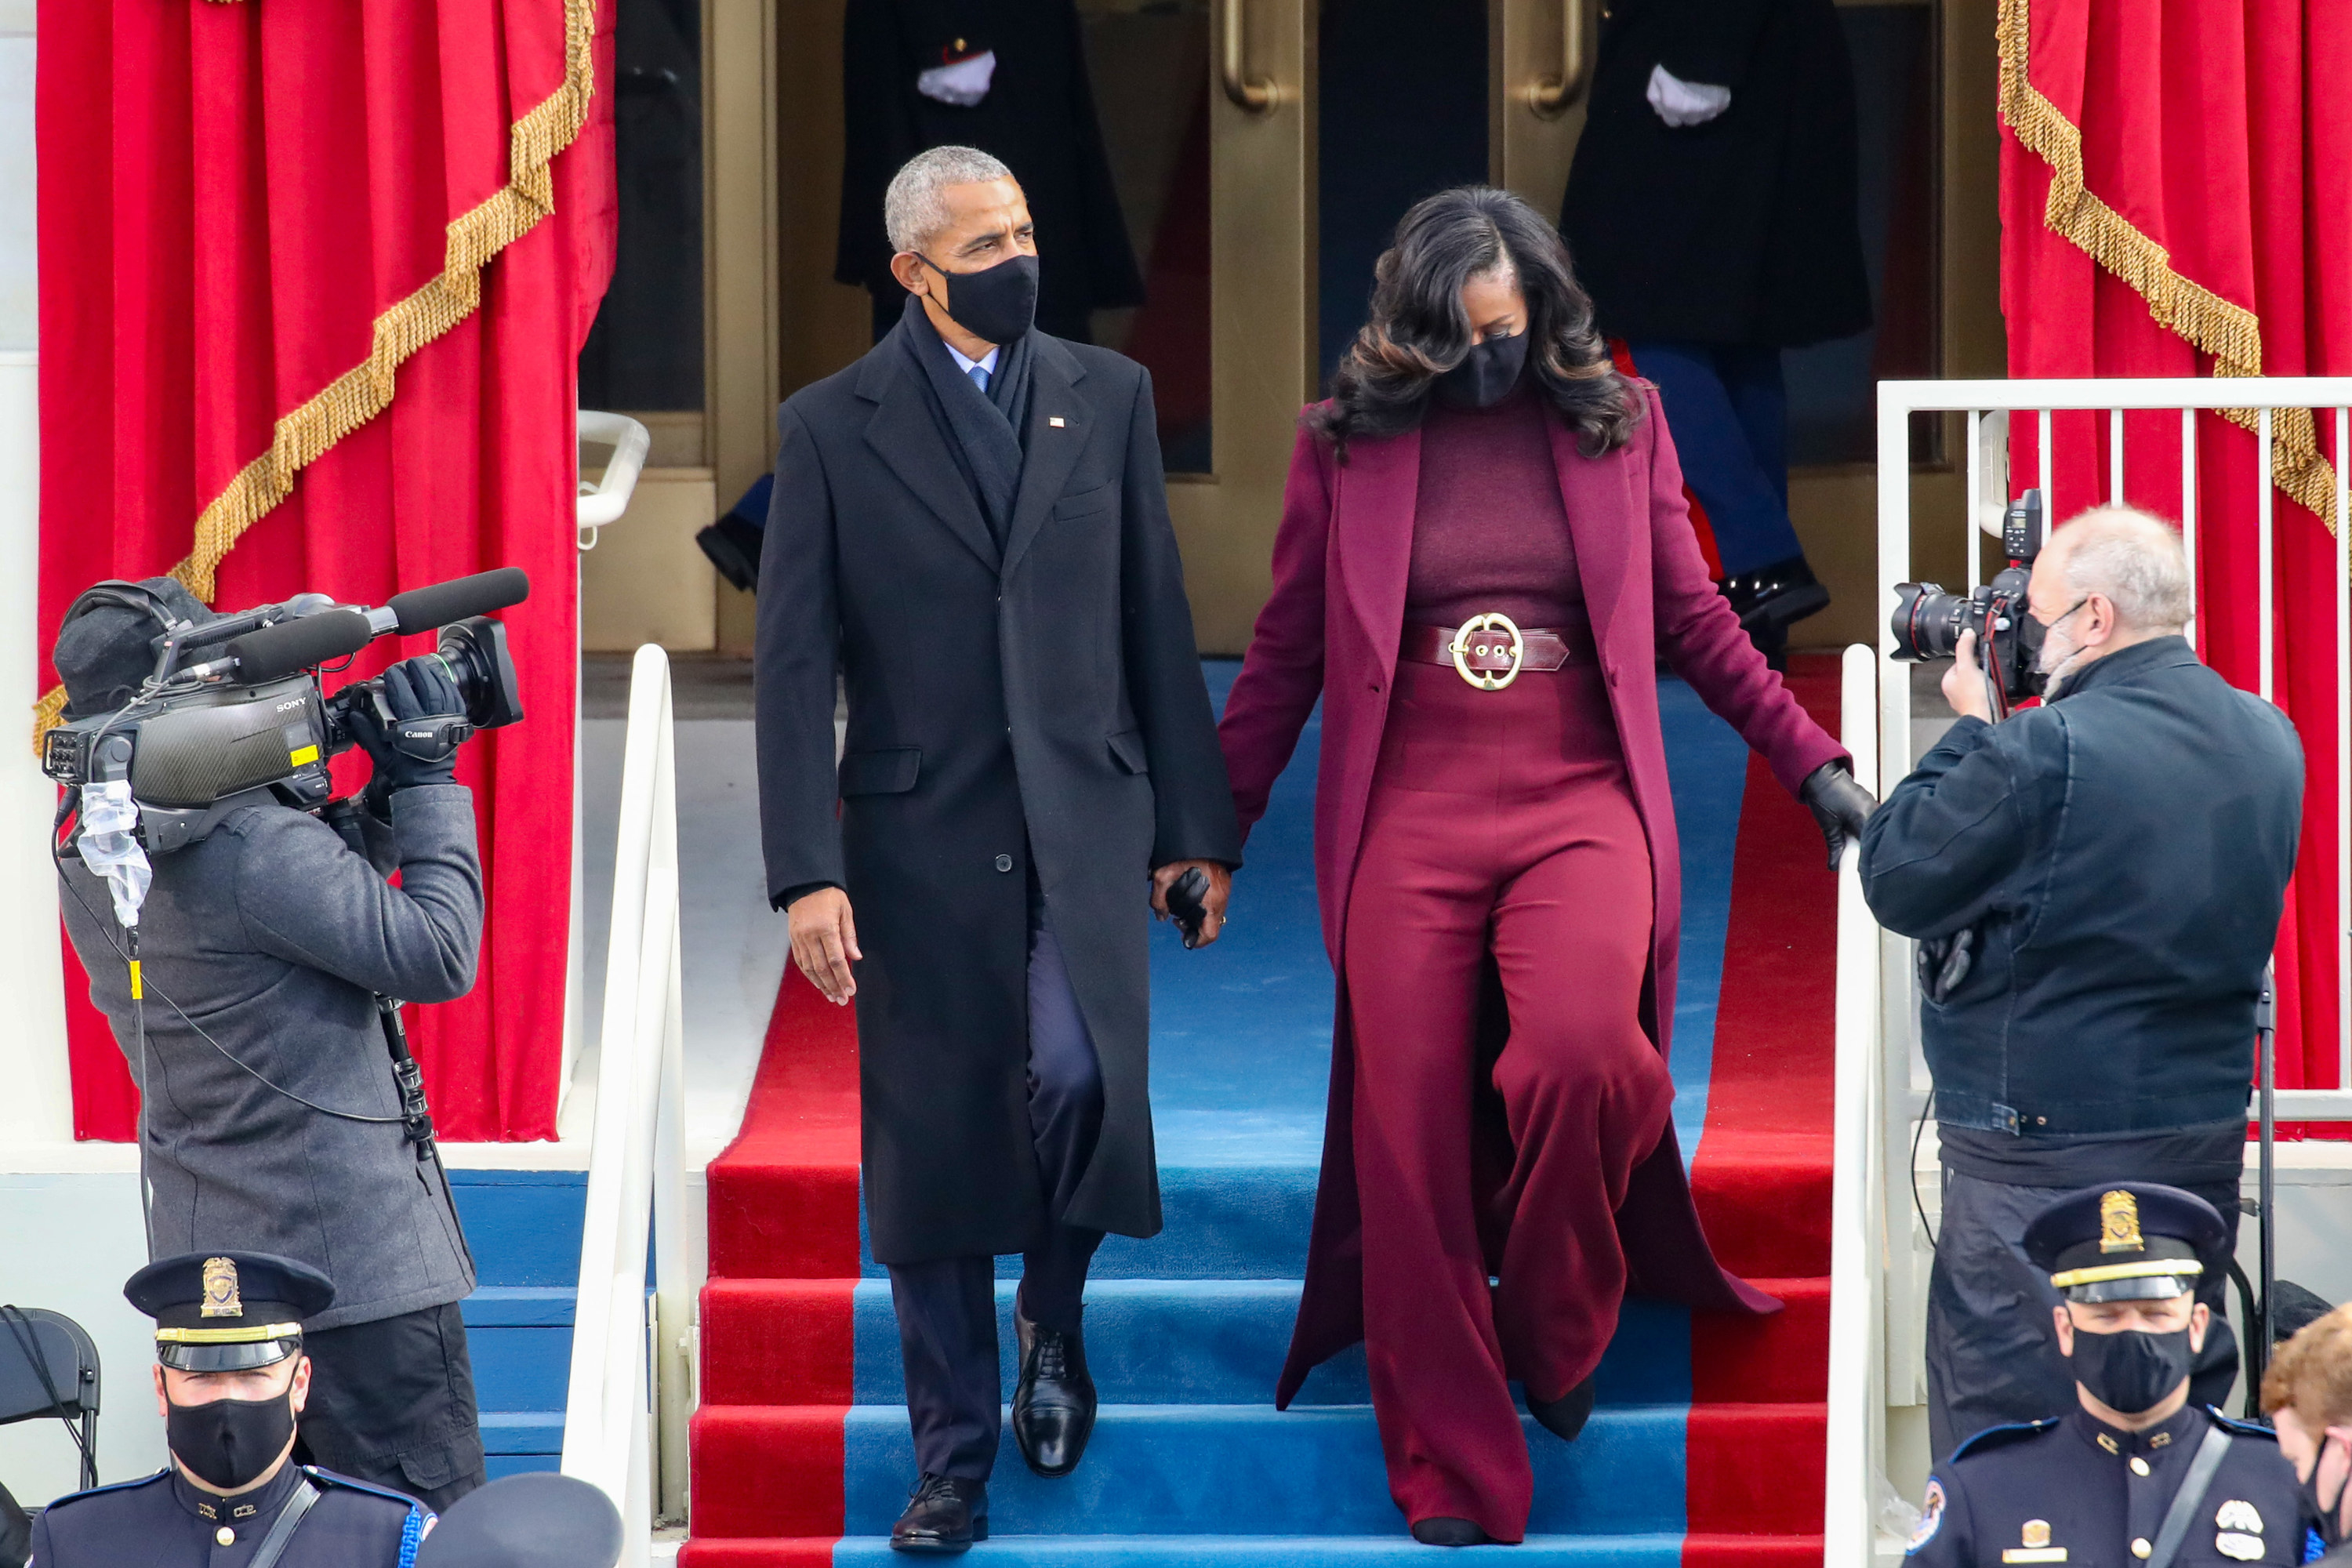 Former U.S. President Barack Obama and former first lady Michelle Obama in black face masks arriving at the inauguration.